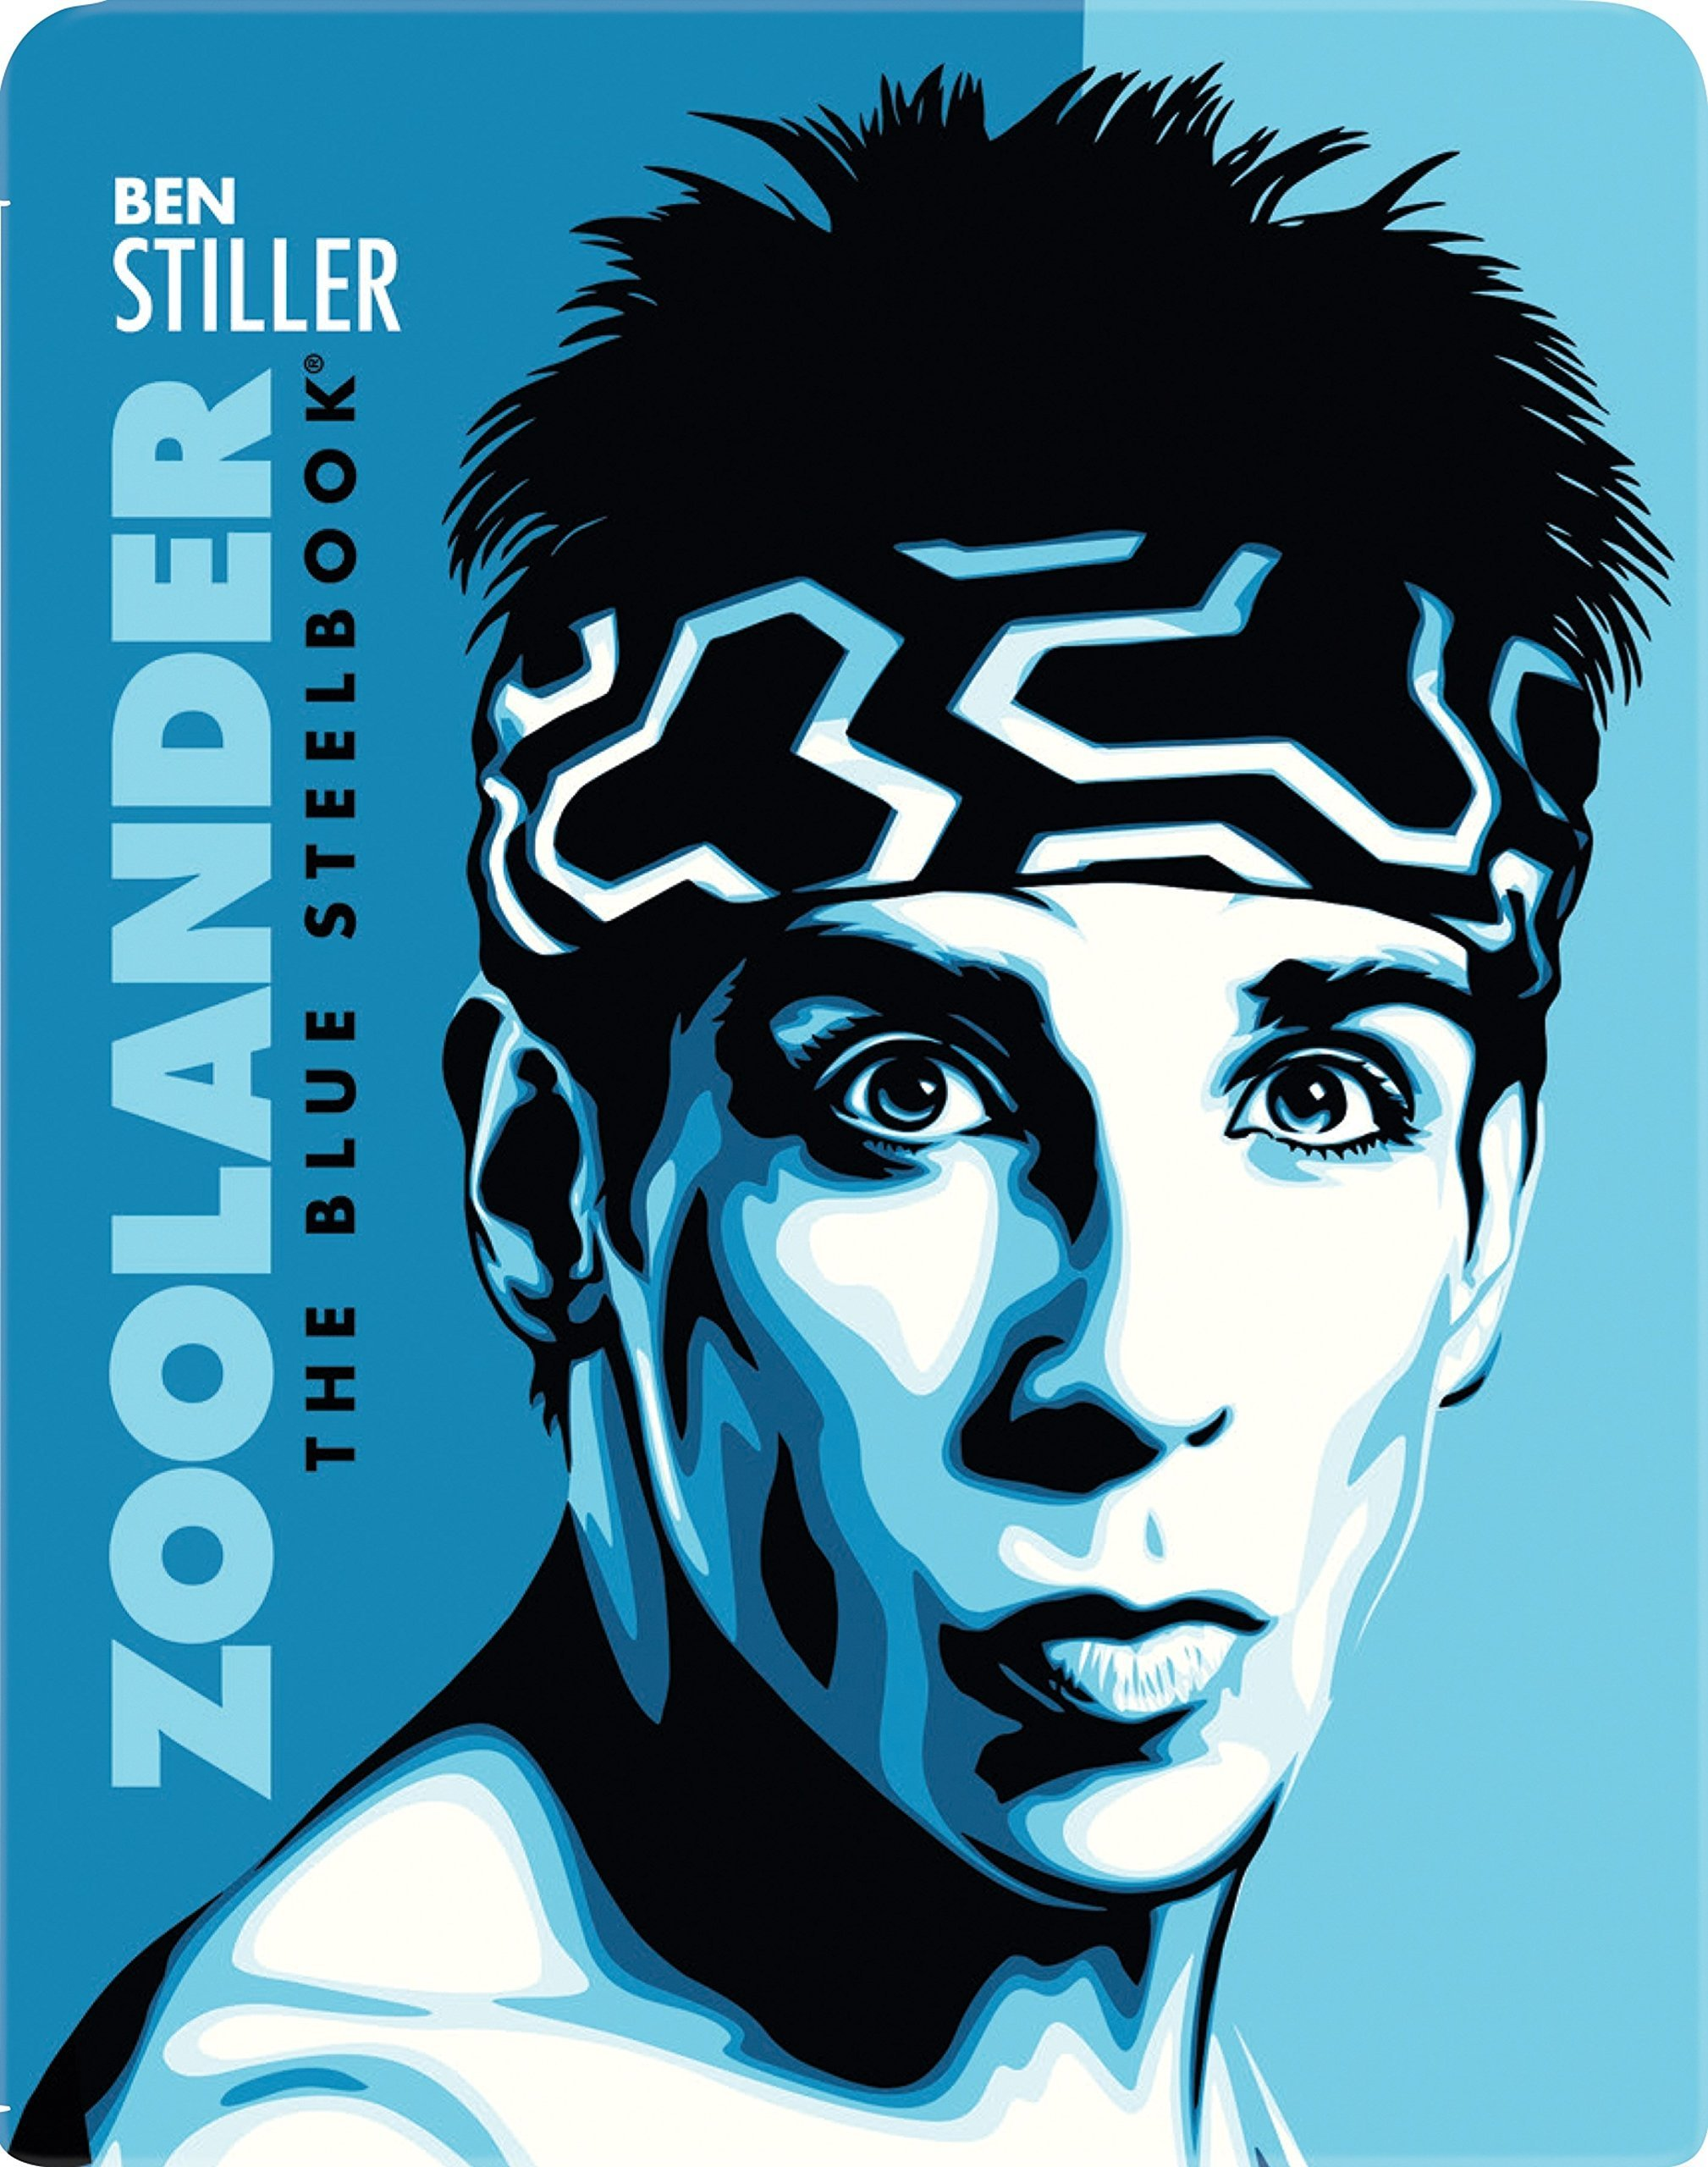 Zoolander The Blue Steelbook Blu-ray Review